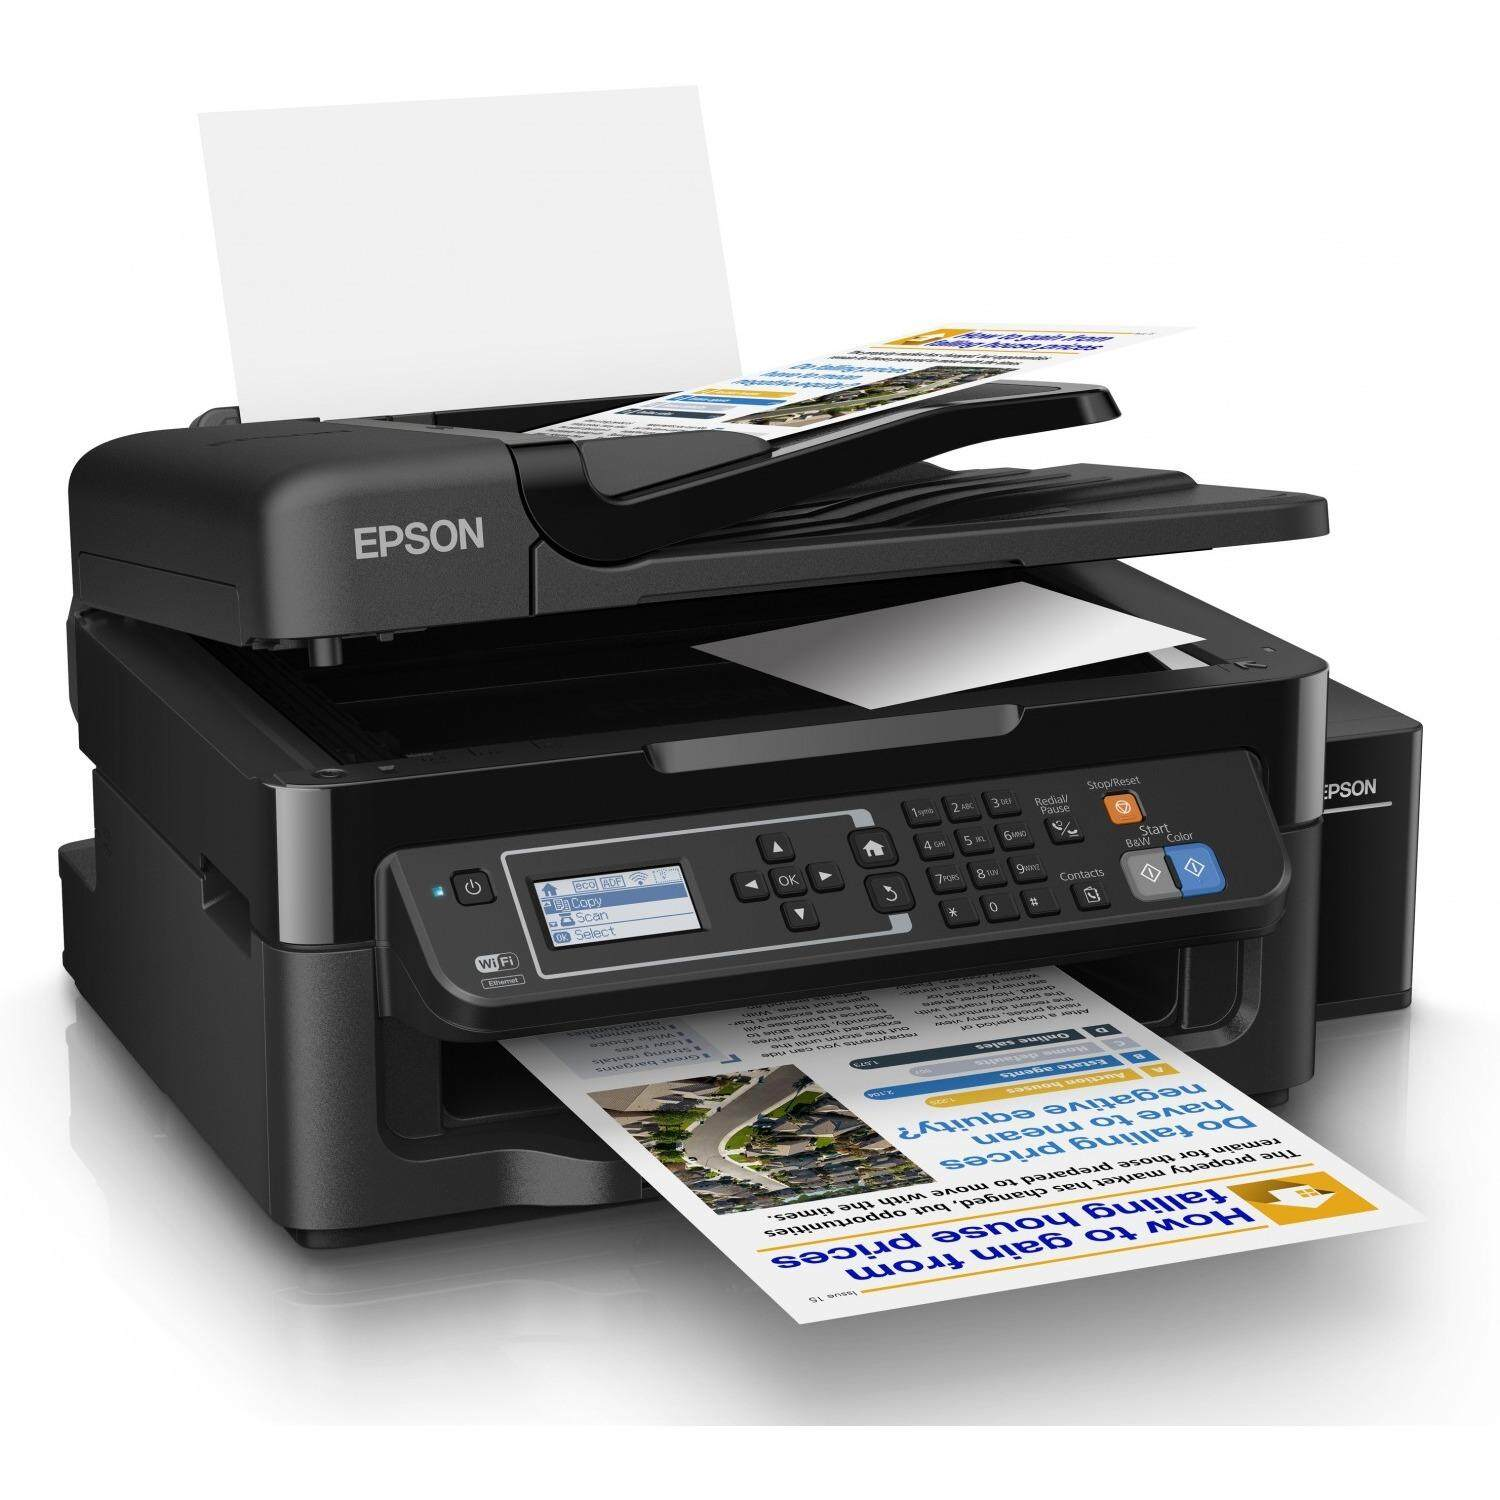 Epson L565 Wi-Fi All-in-One Ink Tank Printer (READY STOCK)